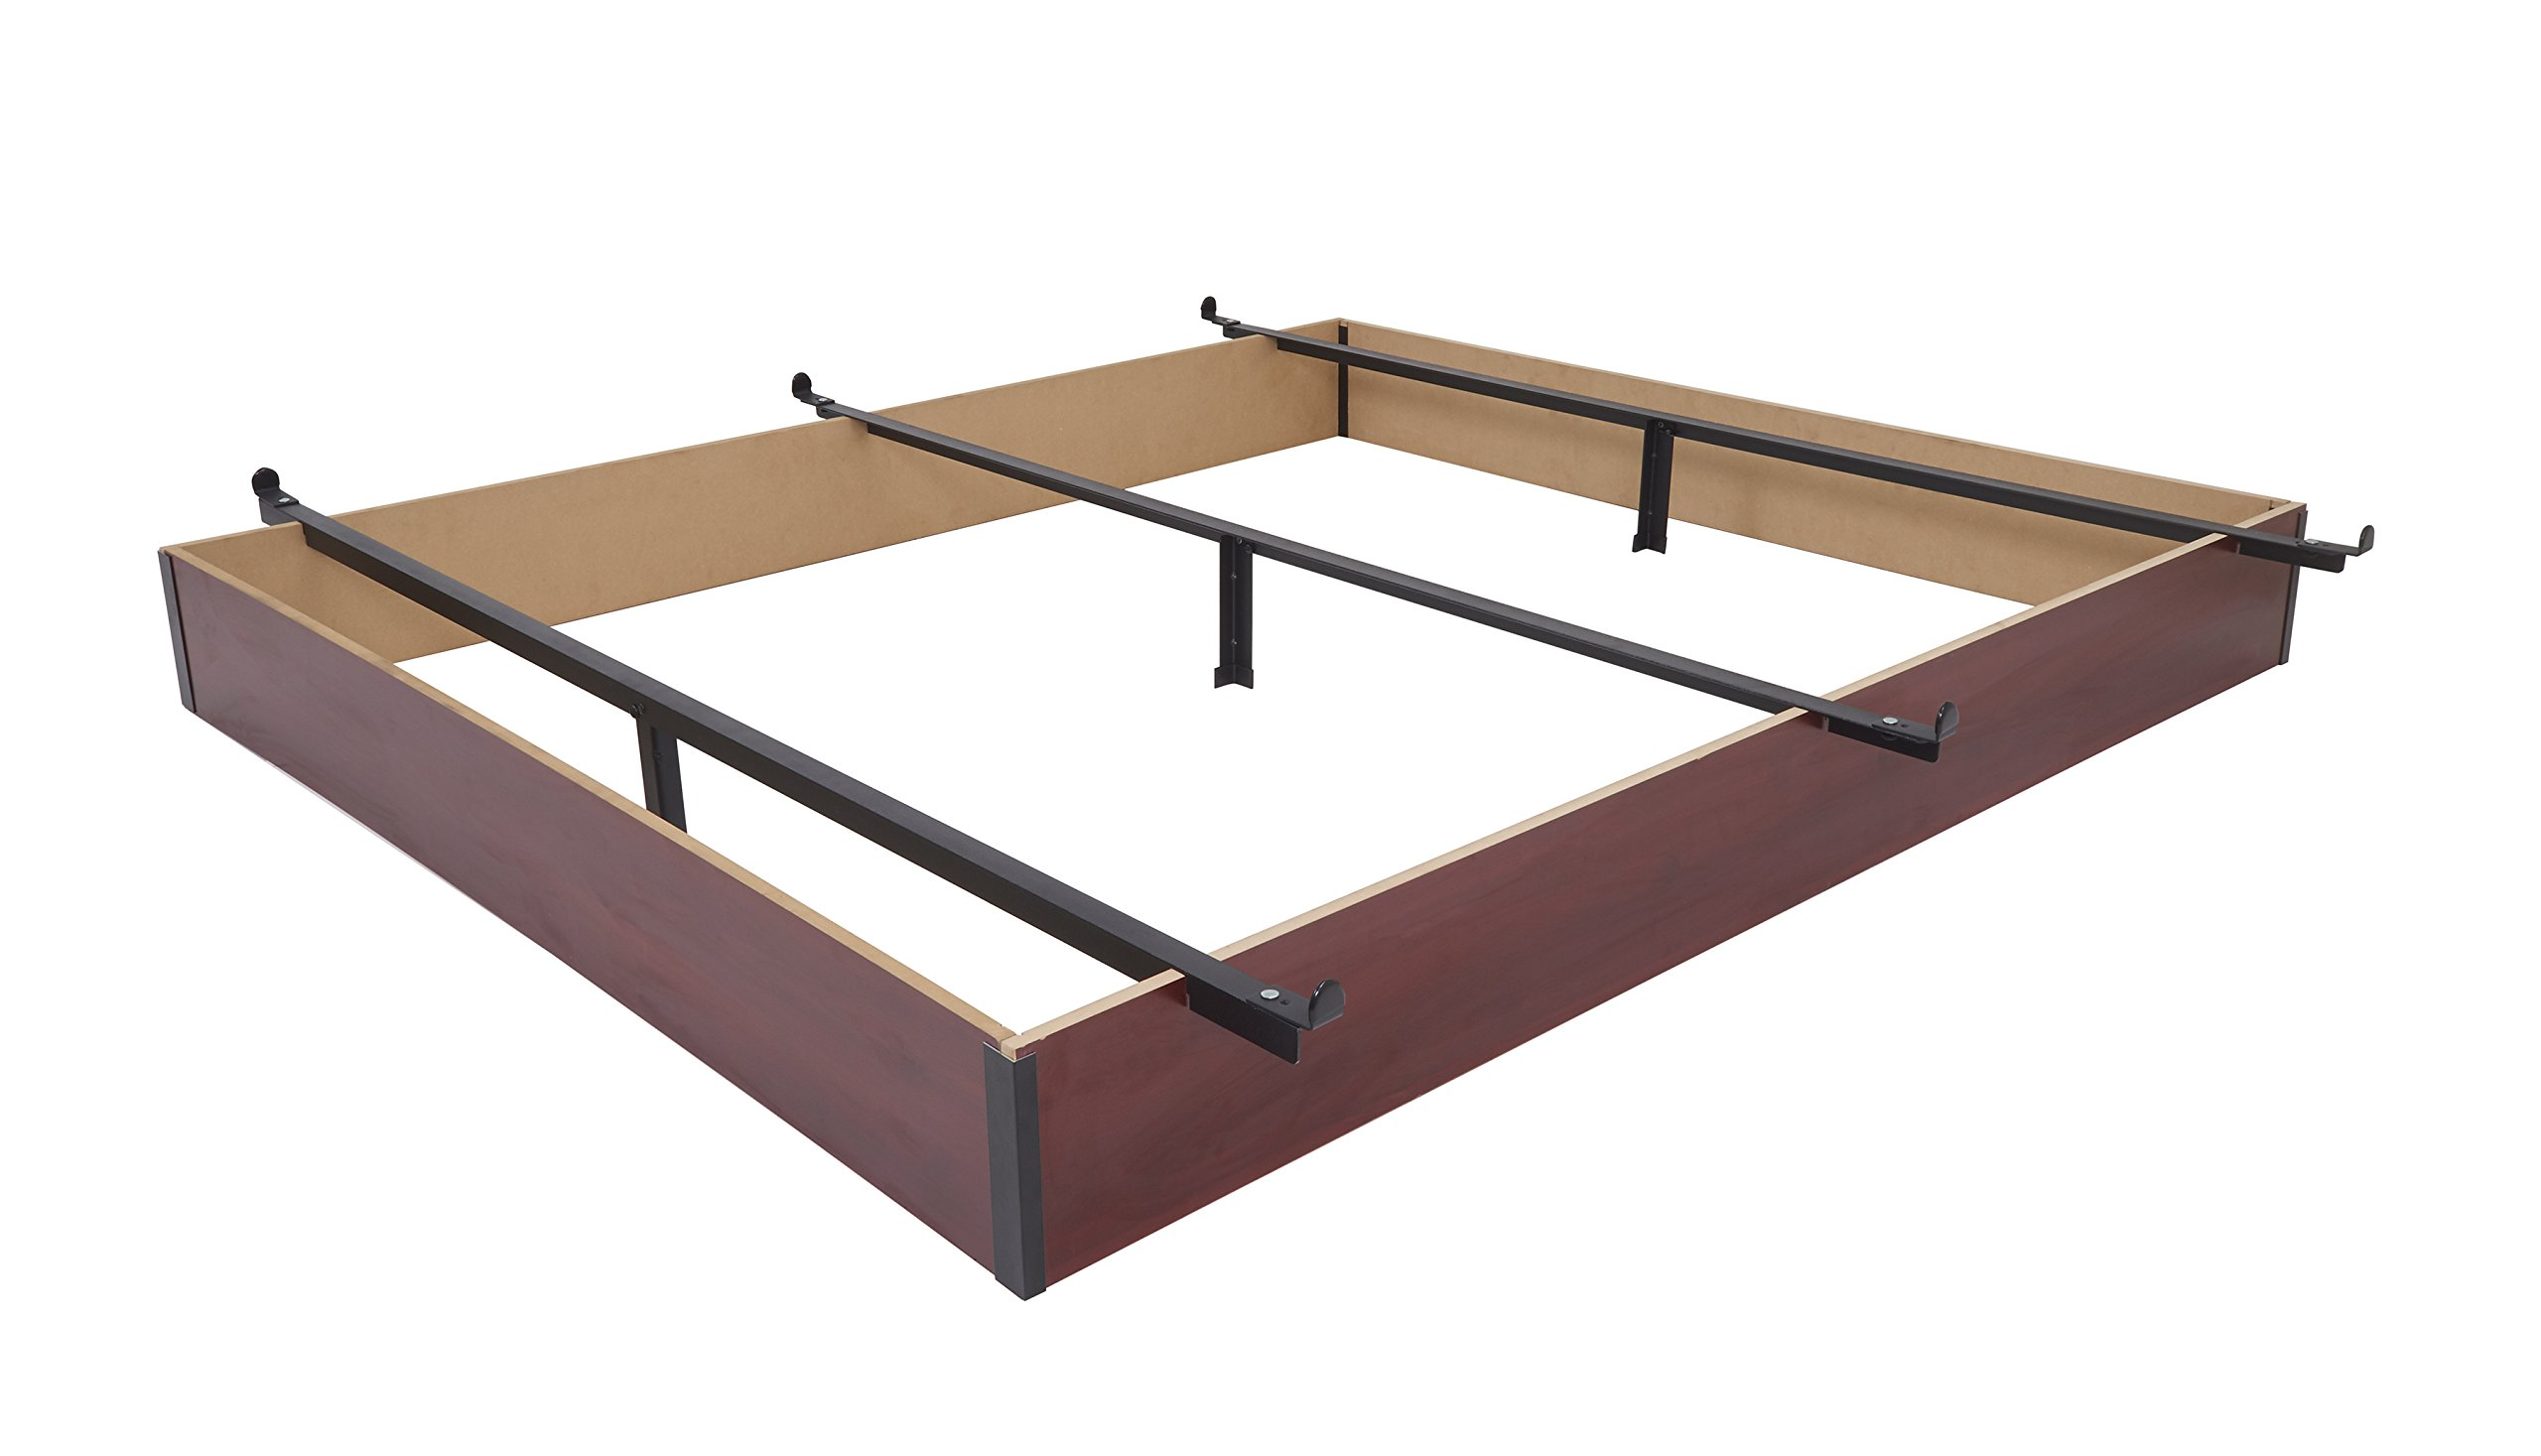 Mantua Queen Wood Bed Base, Cherry Finish - Extend the Life of Any Box Spring and Mattress, Prevent Dust Accumulation Under Beds, Easy Assembly with No Tools Required - Model C75WB50 N by Mantua